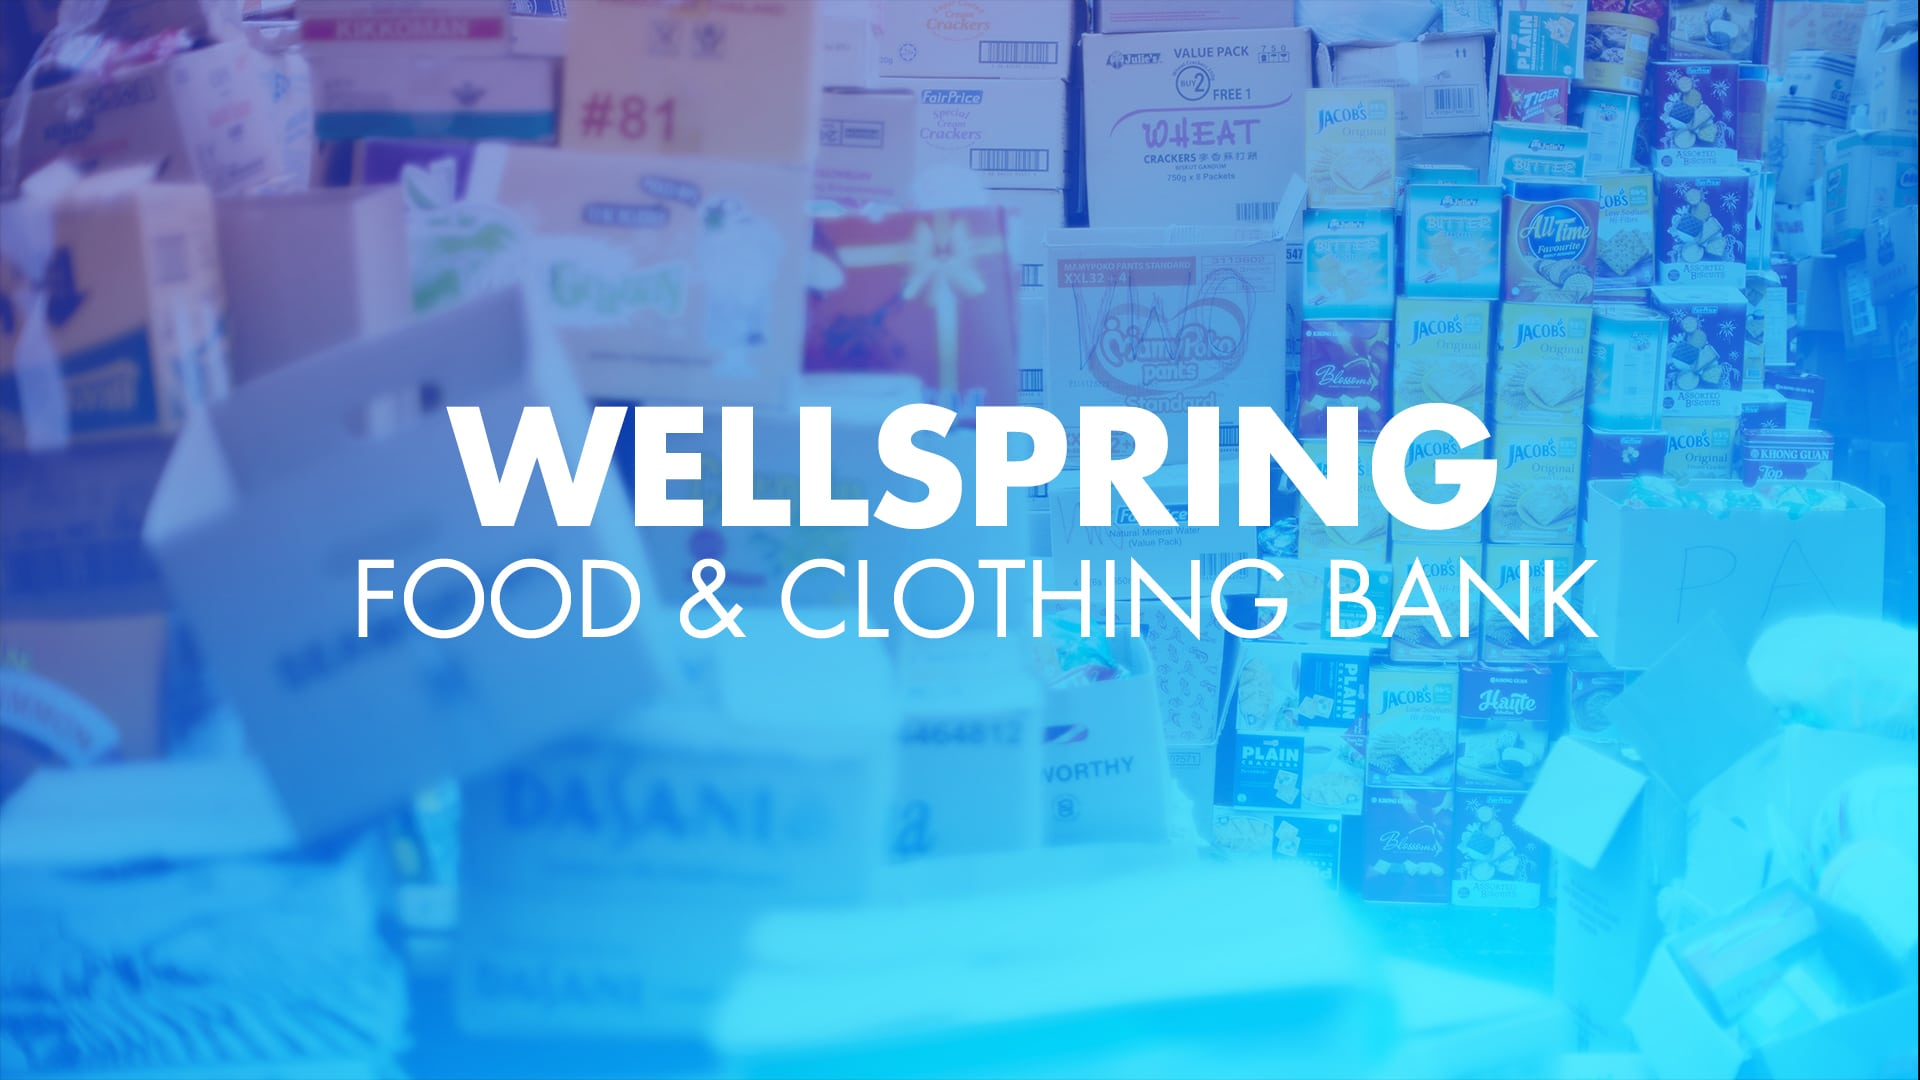 Wellspring Food and Clothing Bank Boulder Colorado